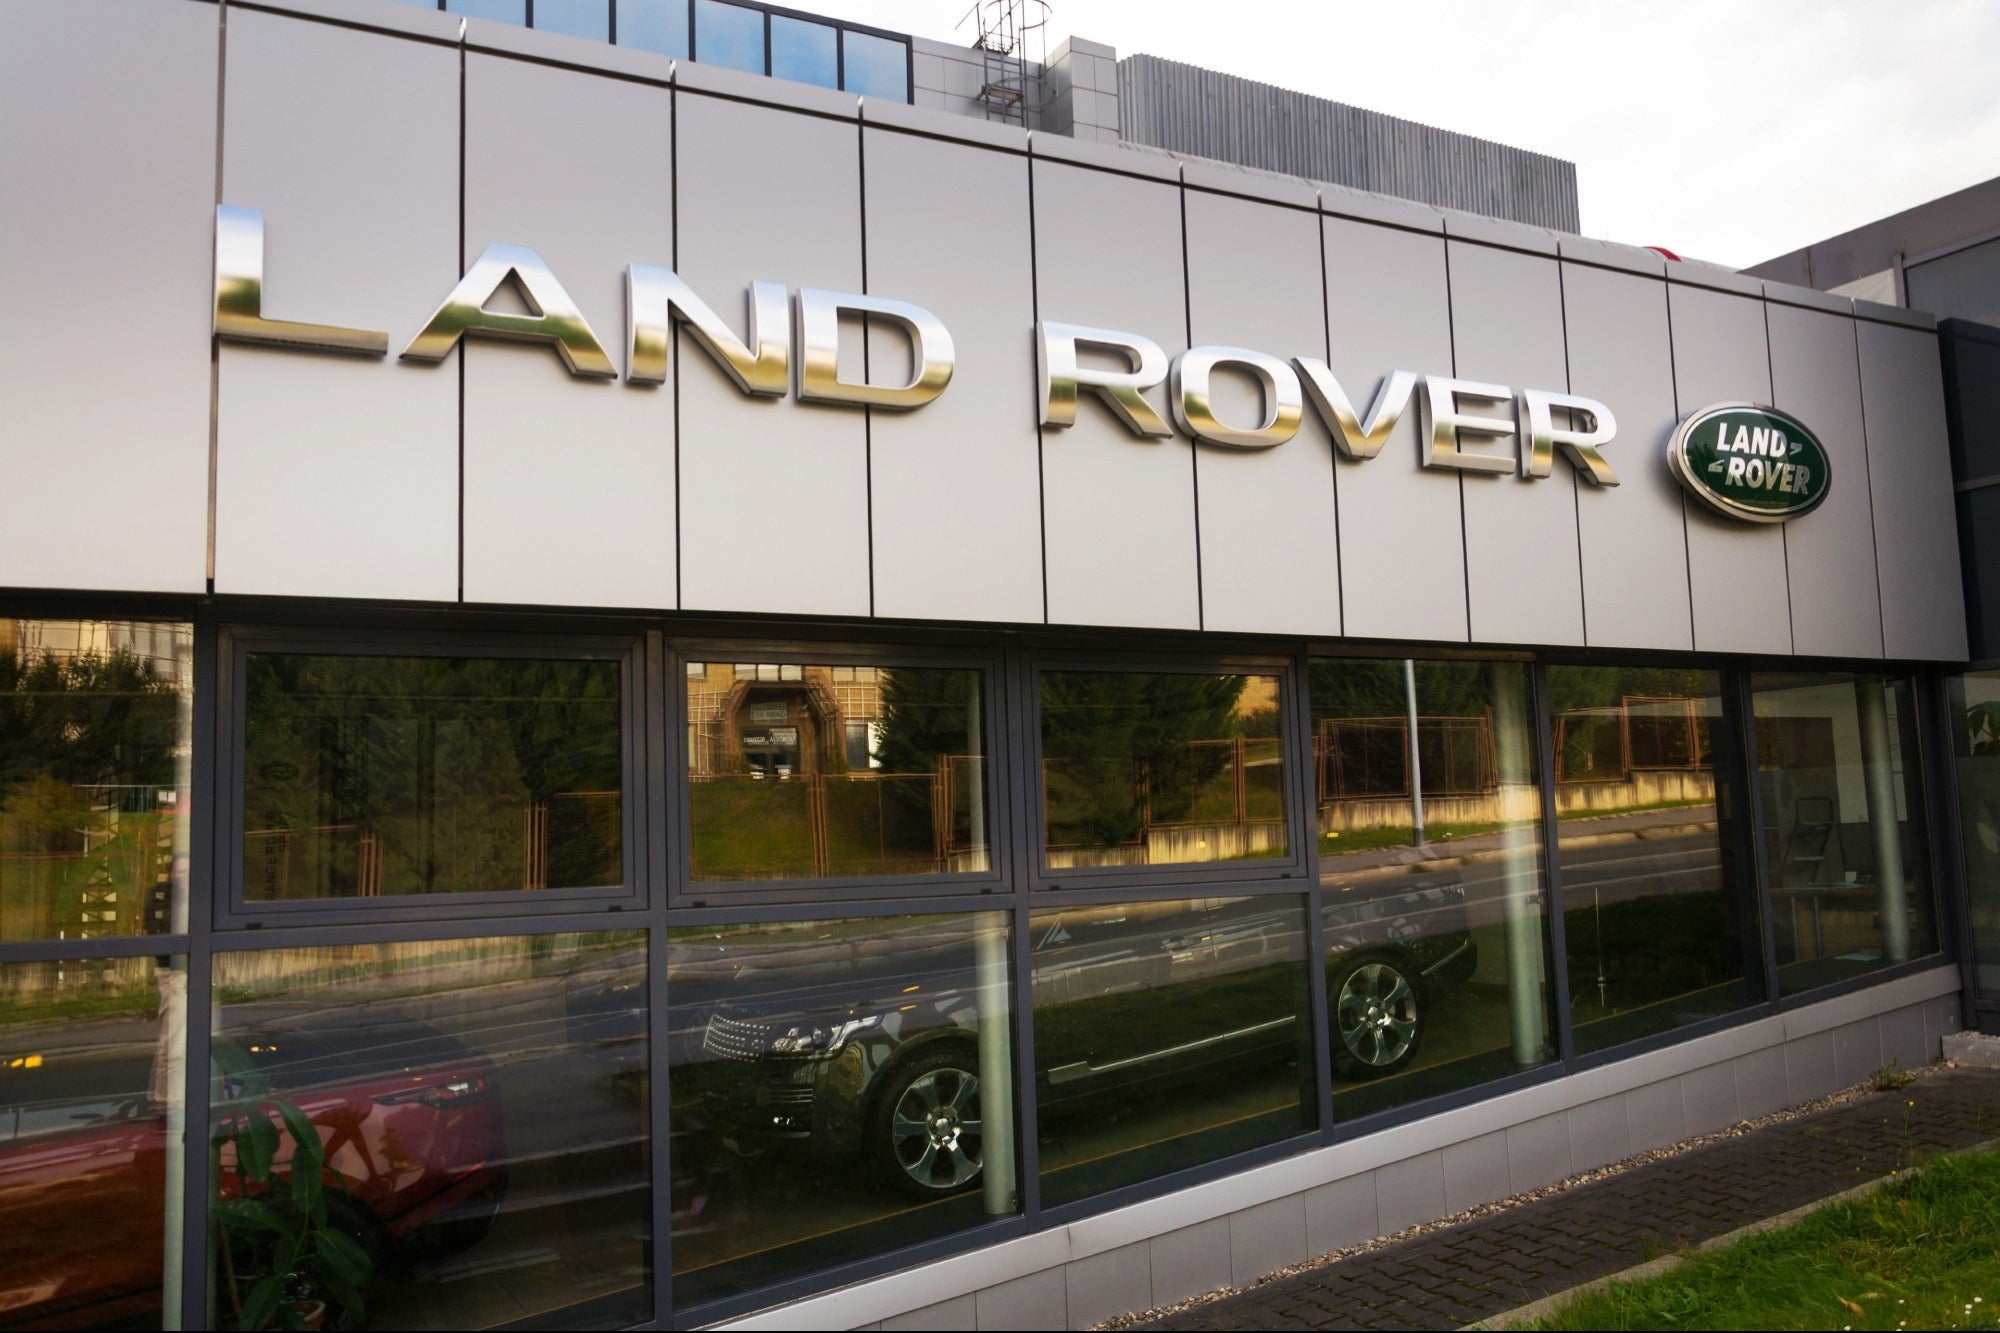 Land Rover employee asks for 808 sick days, company fires him, and he wins lawsuit